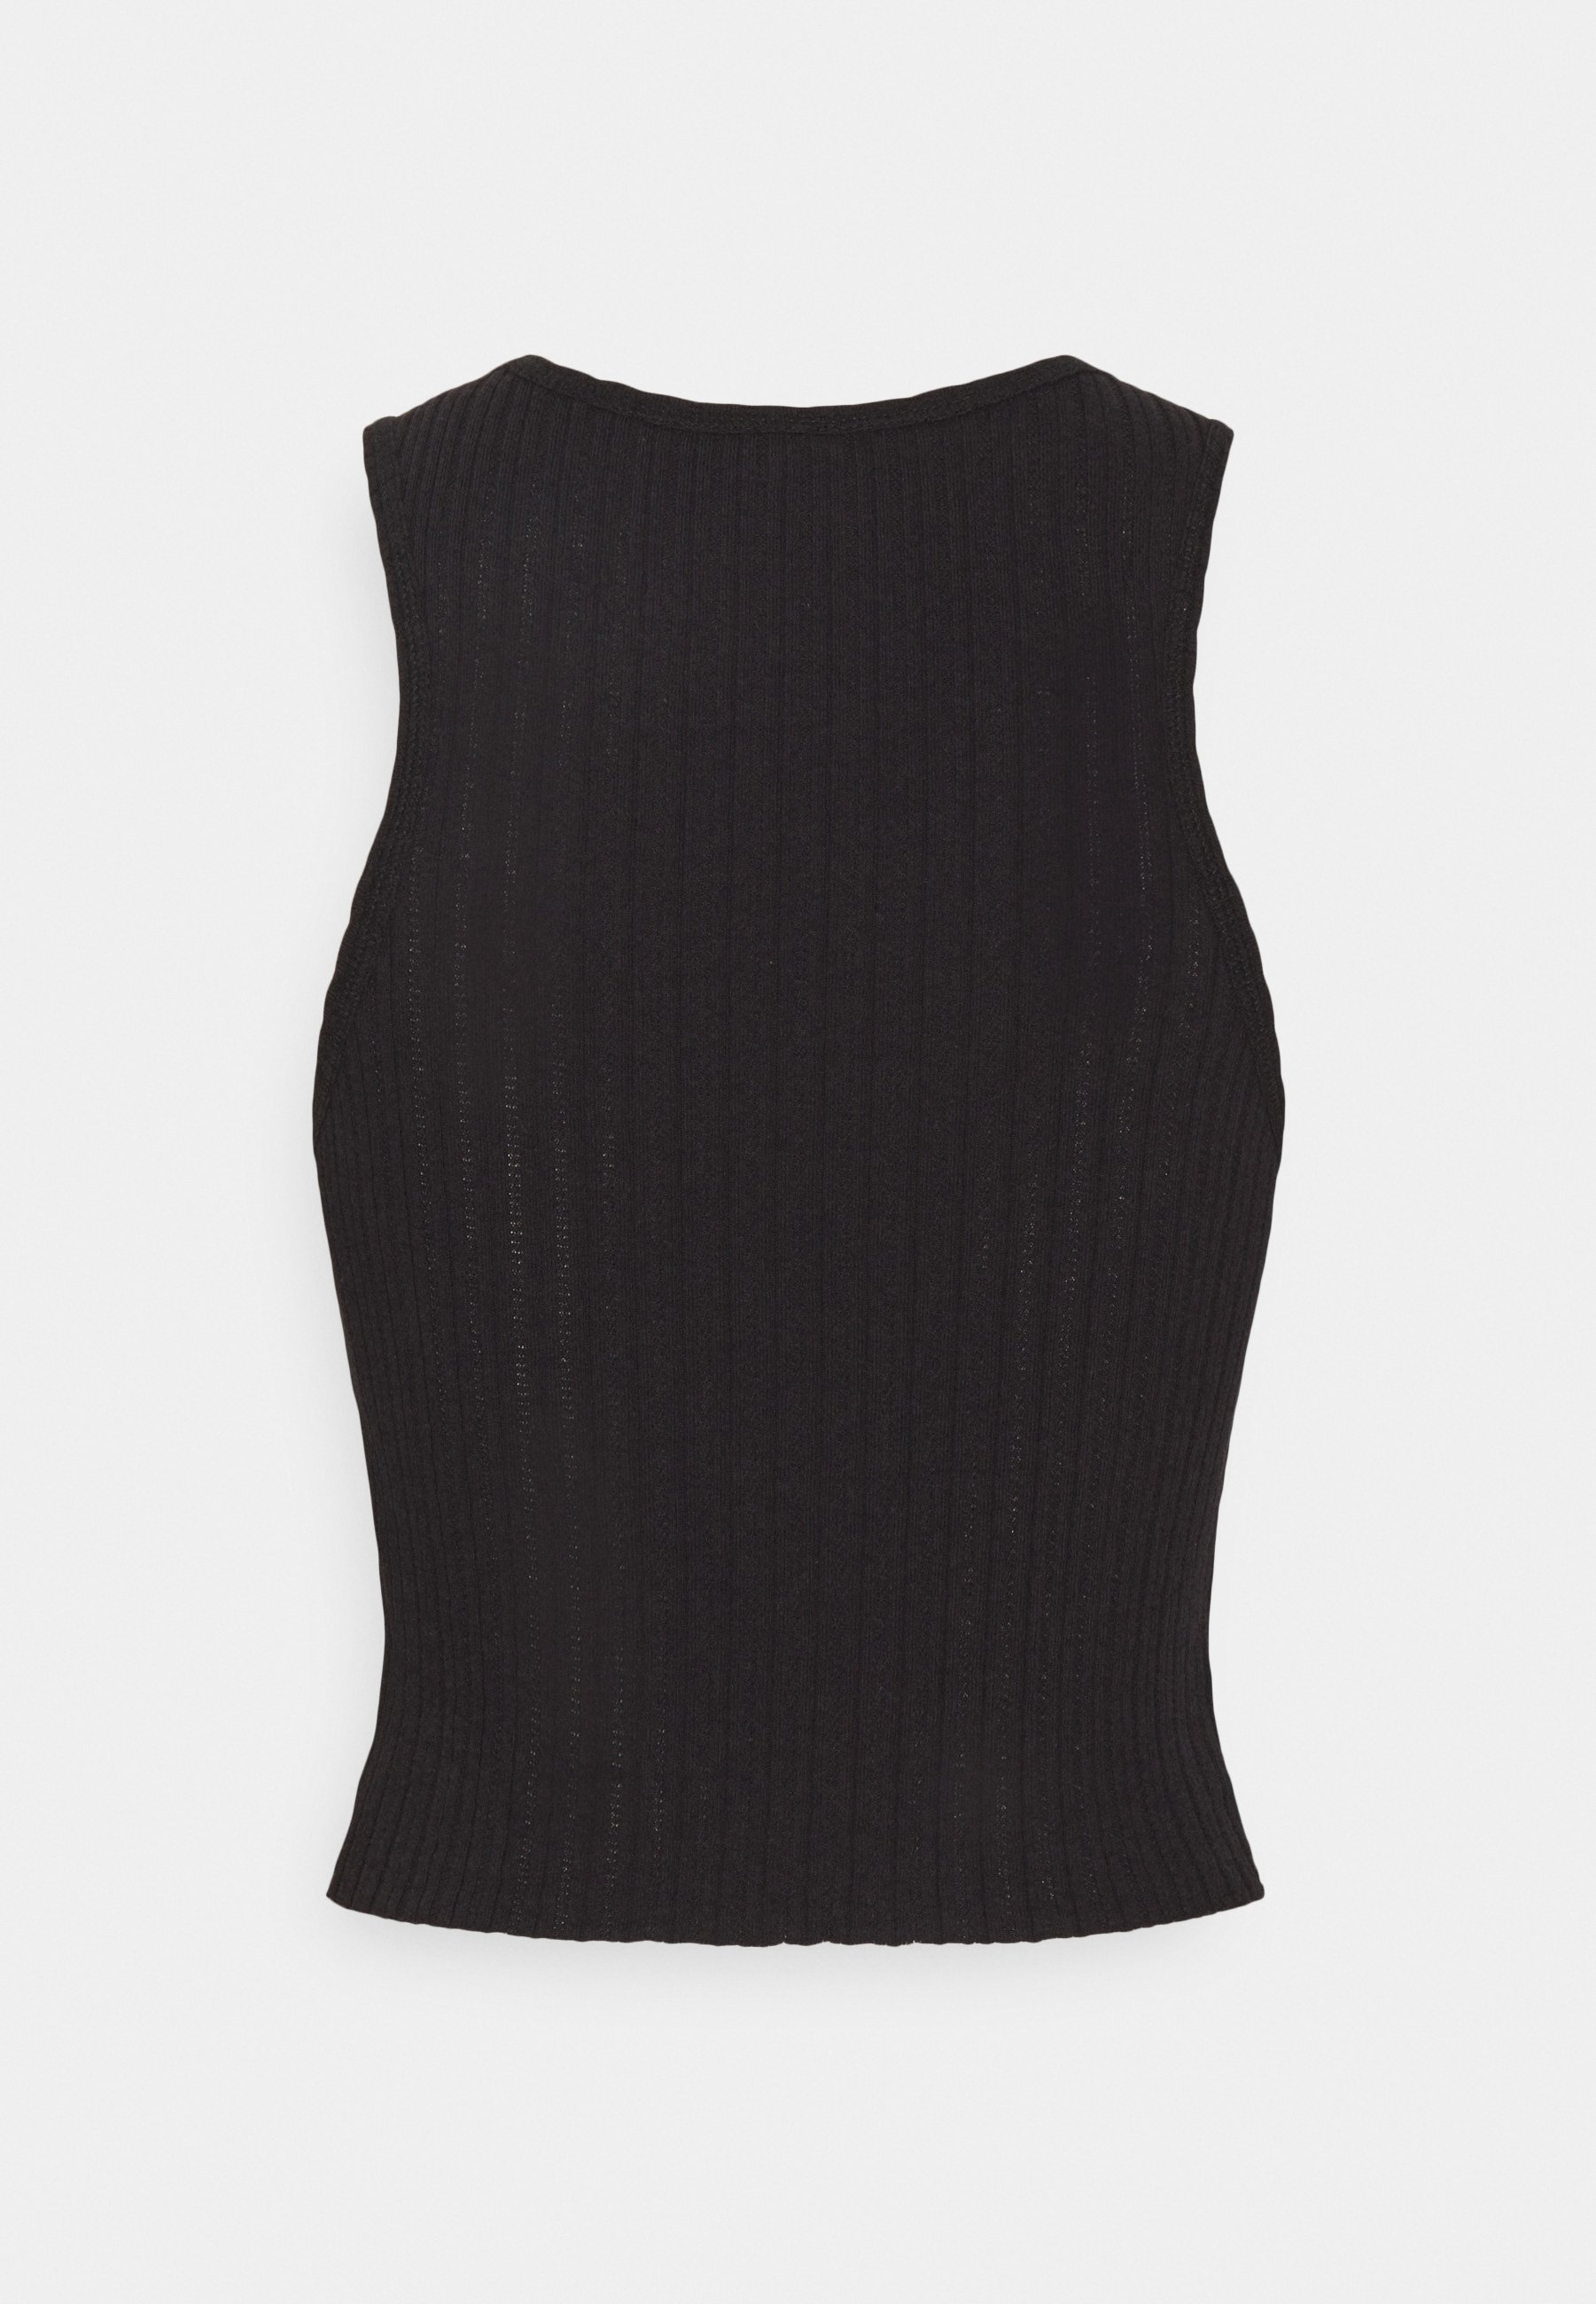 Bdg Urban Outfitters High Tank - Topper Black/svart